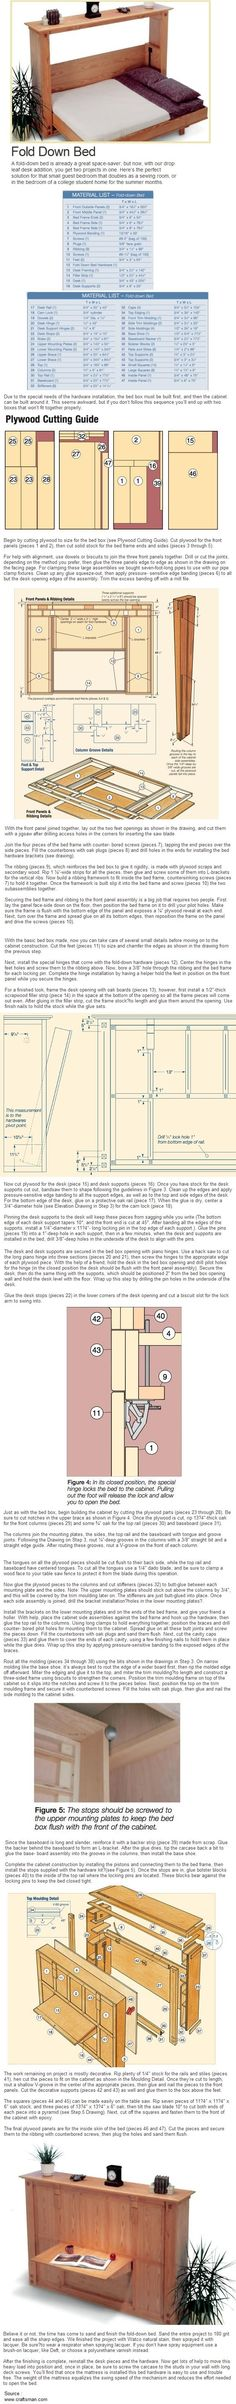 A guide for making a fold down bed. Make the most of tight spaces. http://Craftsman.com #1897